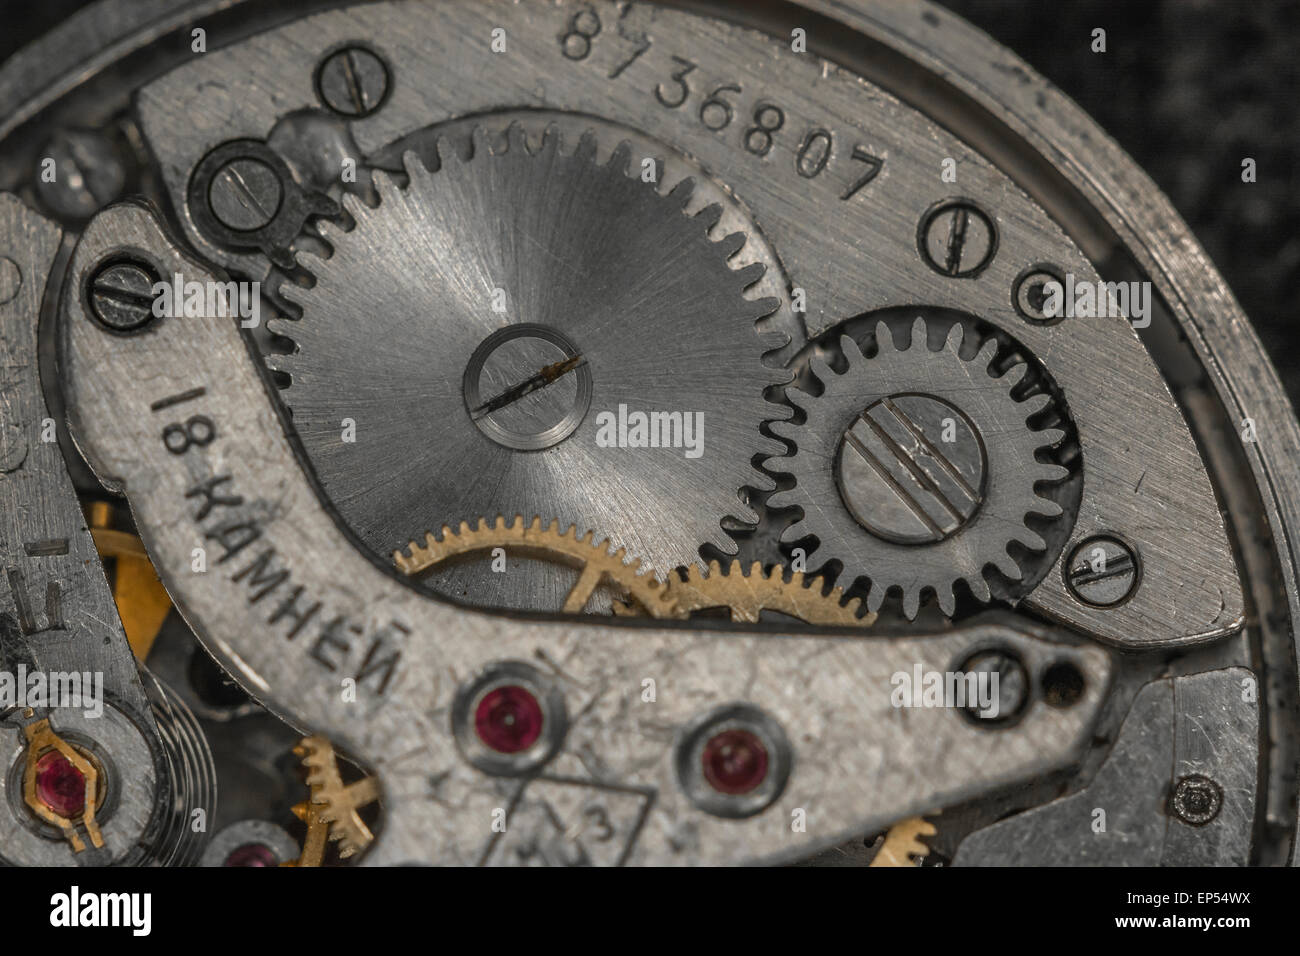 Macro-photo of Russian wristwatch mechanism. Key focus around centres of steel cogs in middle of picture. - Stock Image